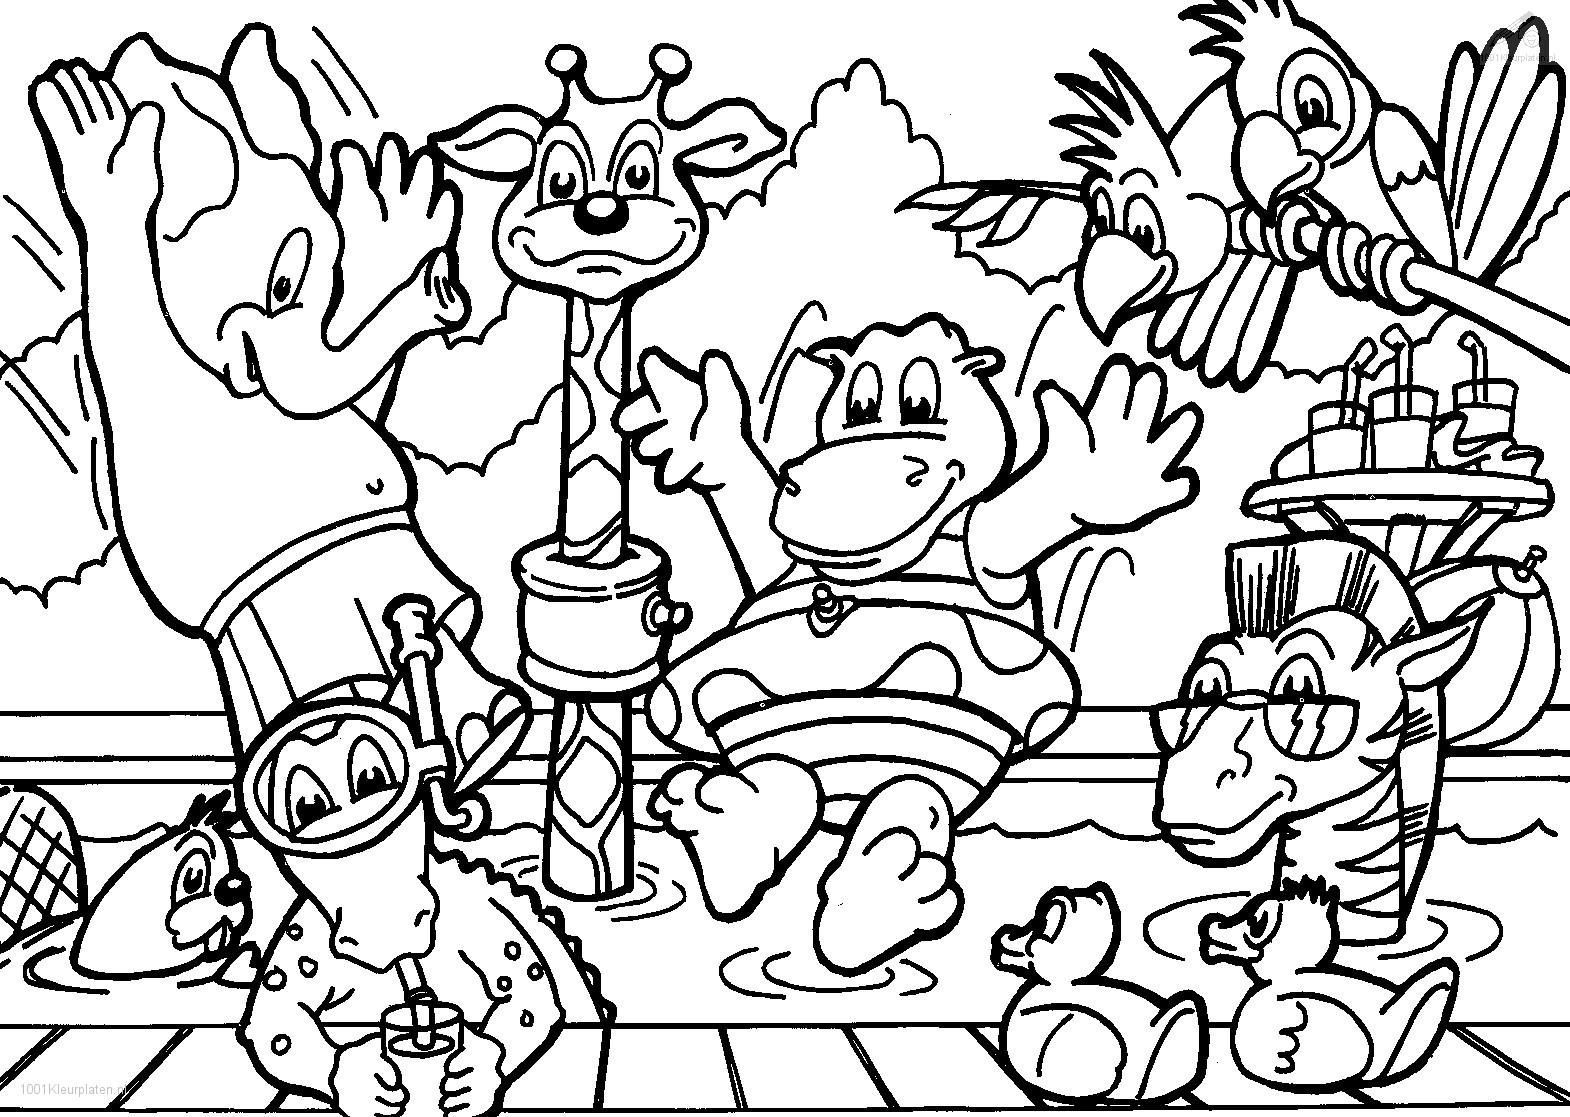 animals coloring pages for babies animals kids printables - Animal Coloring Pages Children